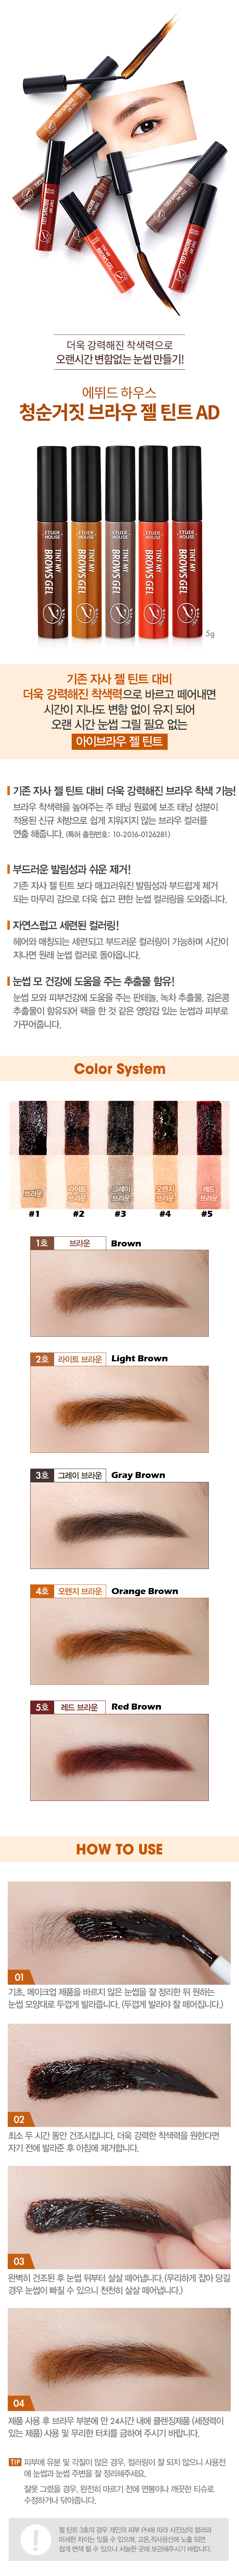 Etude House 2017 New Tint My Brows Gel 5g Ebay Color Brow Detail